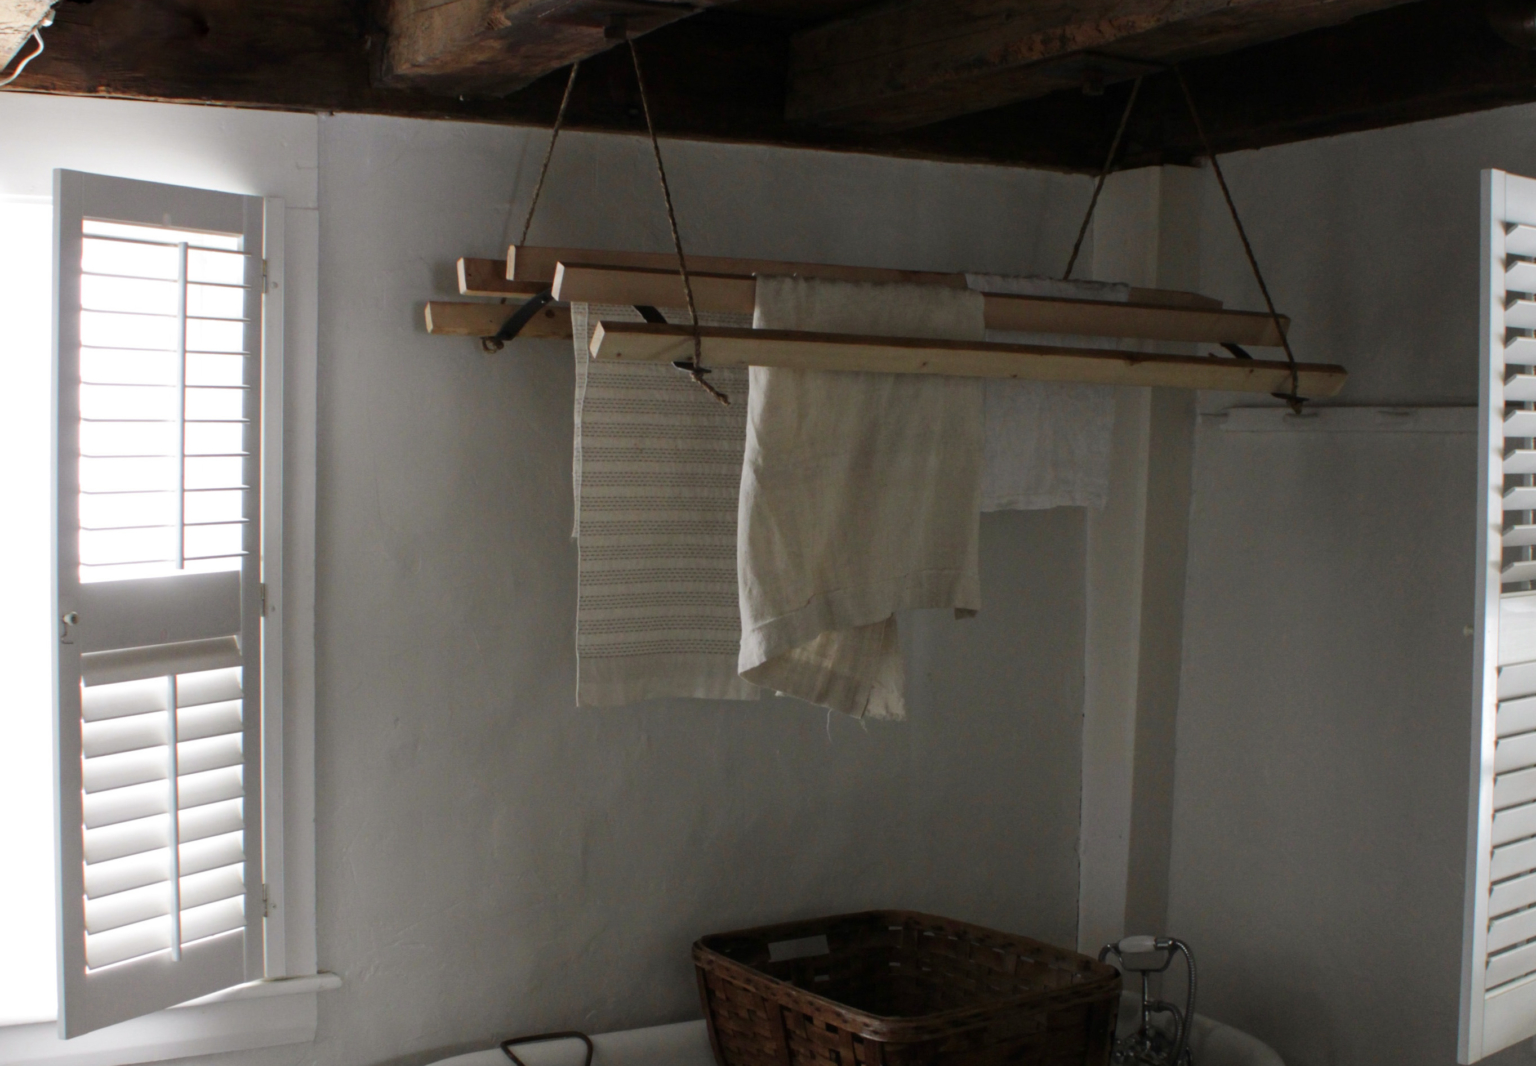 Diy An Old Fashioned Clothes Drying Rack The Organized Home